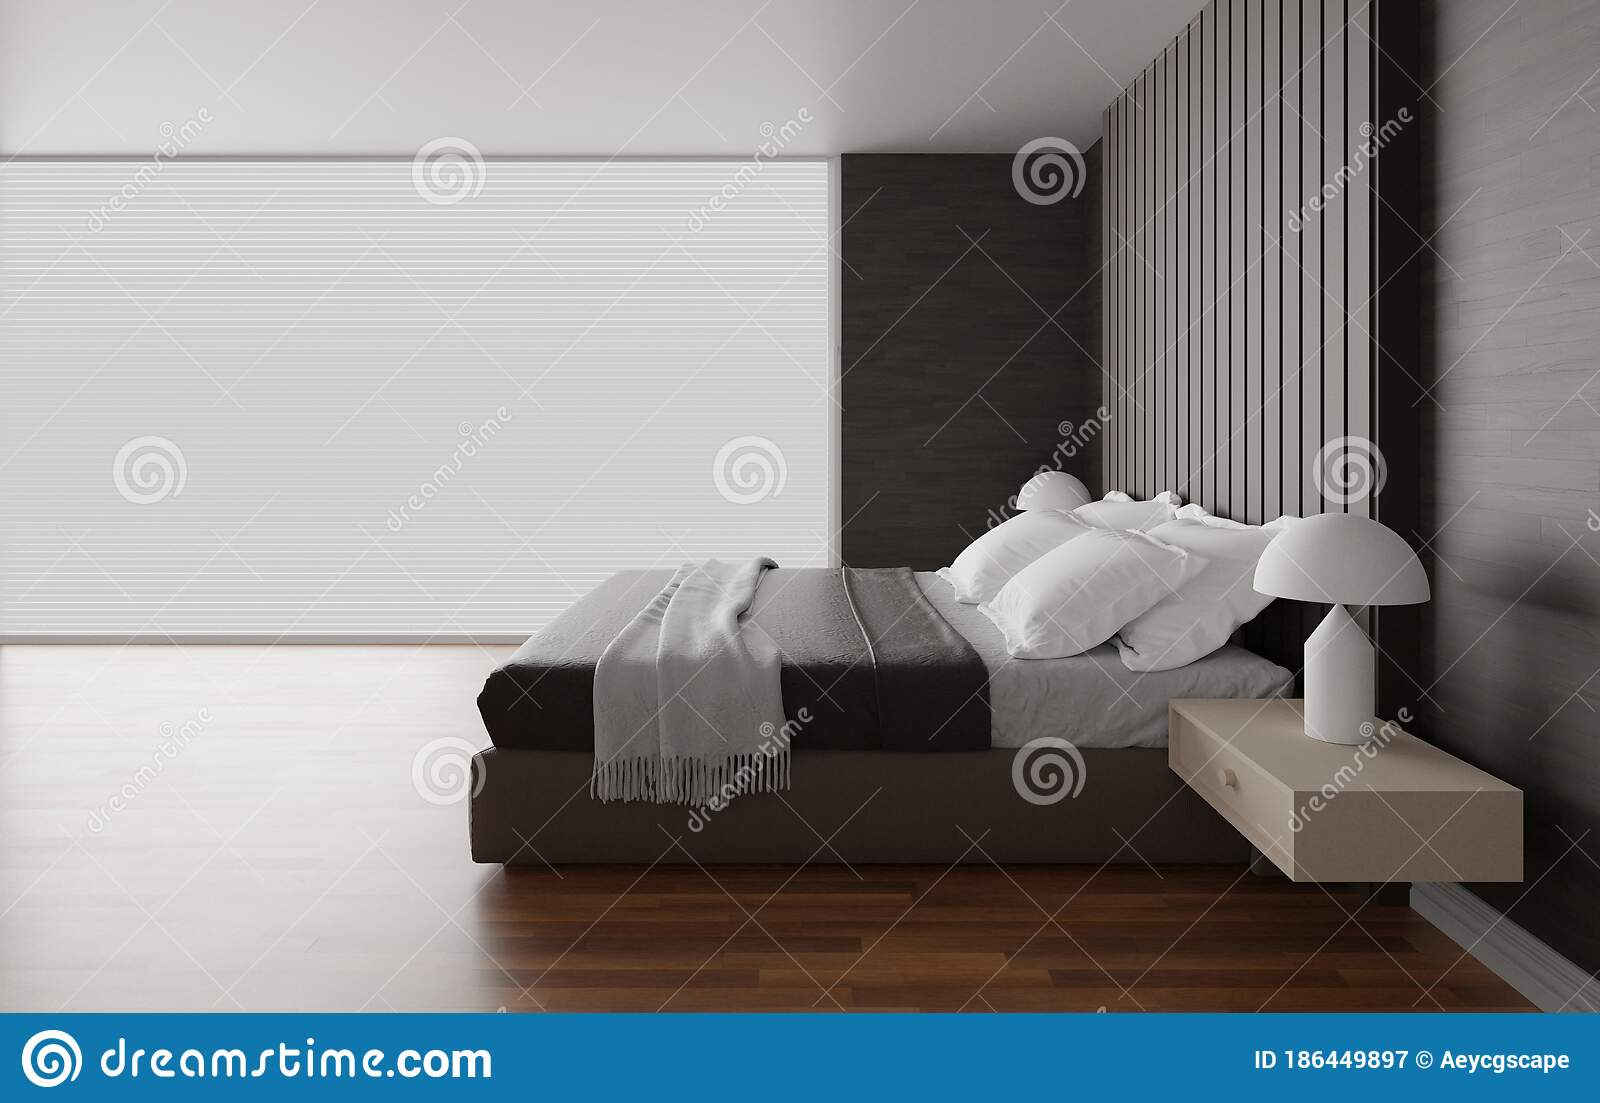 Bedroom Interior Design The Room Have Bed And Large Window Minimalist And Modern Style 3d Render Stock Illustration Illustration Of Room Hotel 186449897